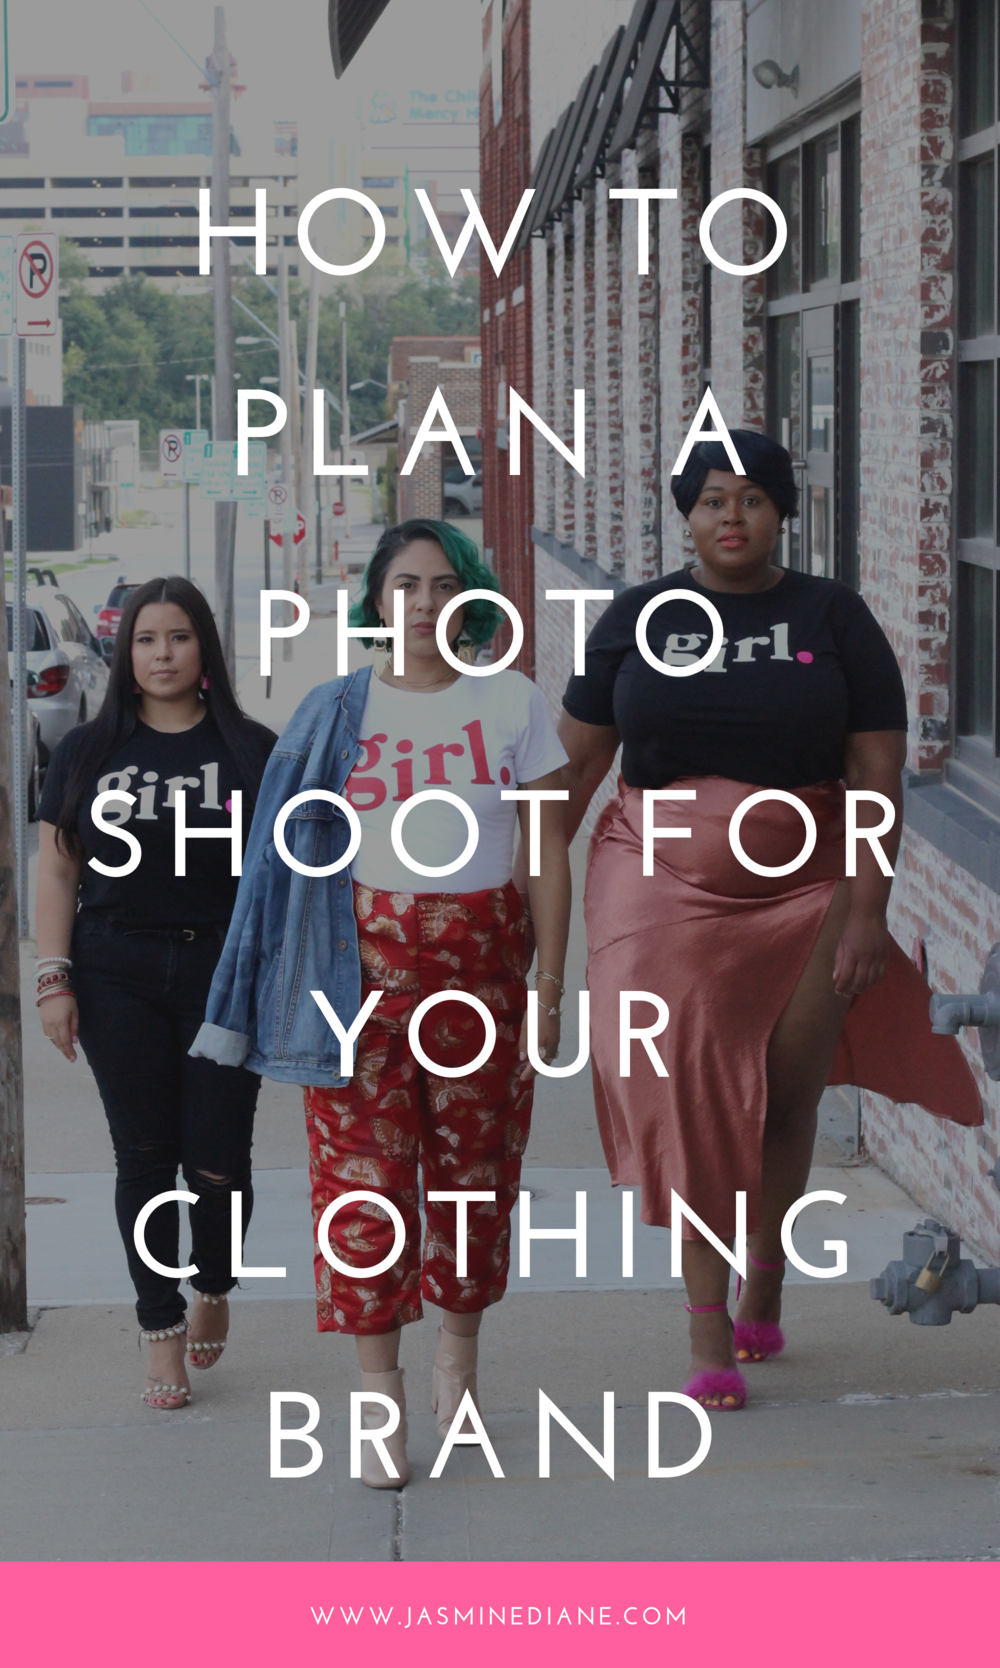 How to Plan a Photo Shoot for Your Clothing Brand